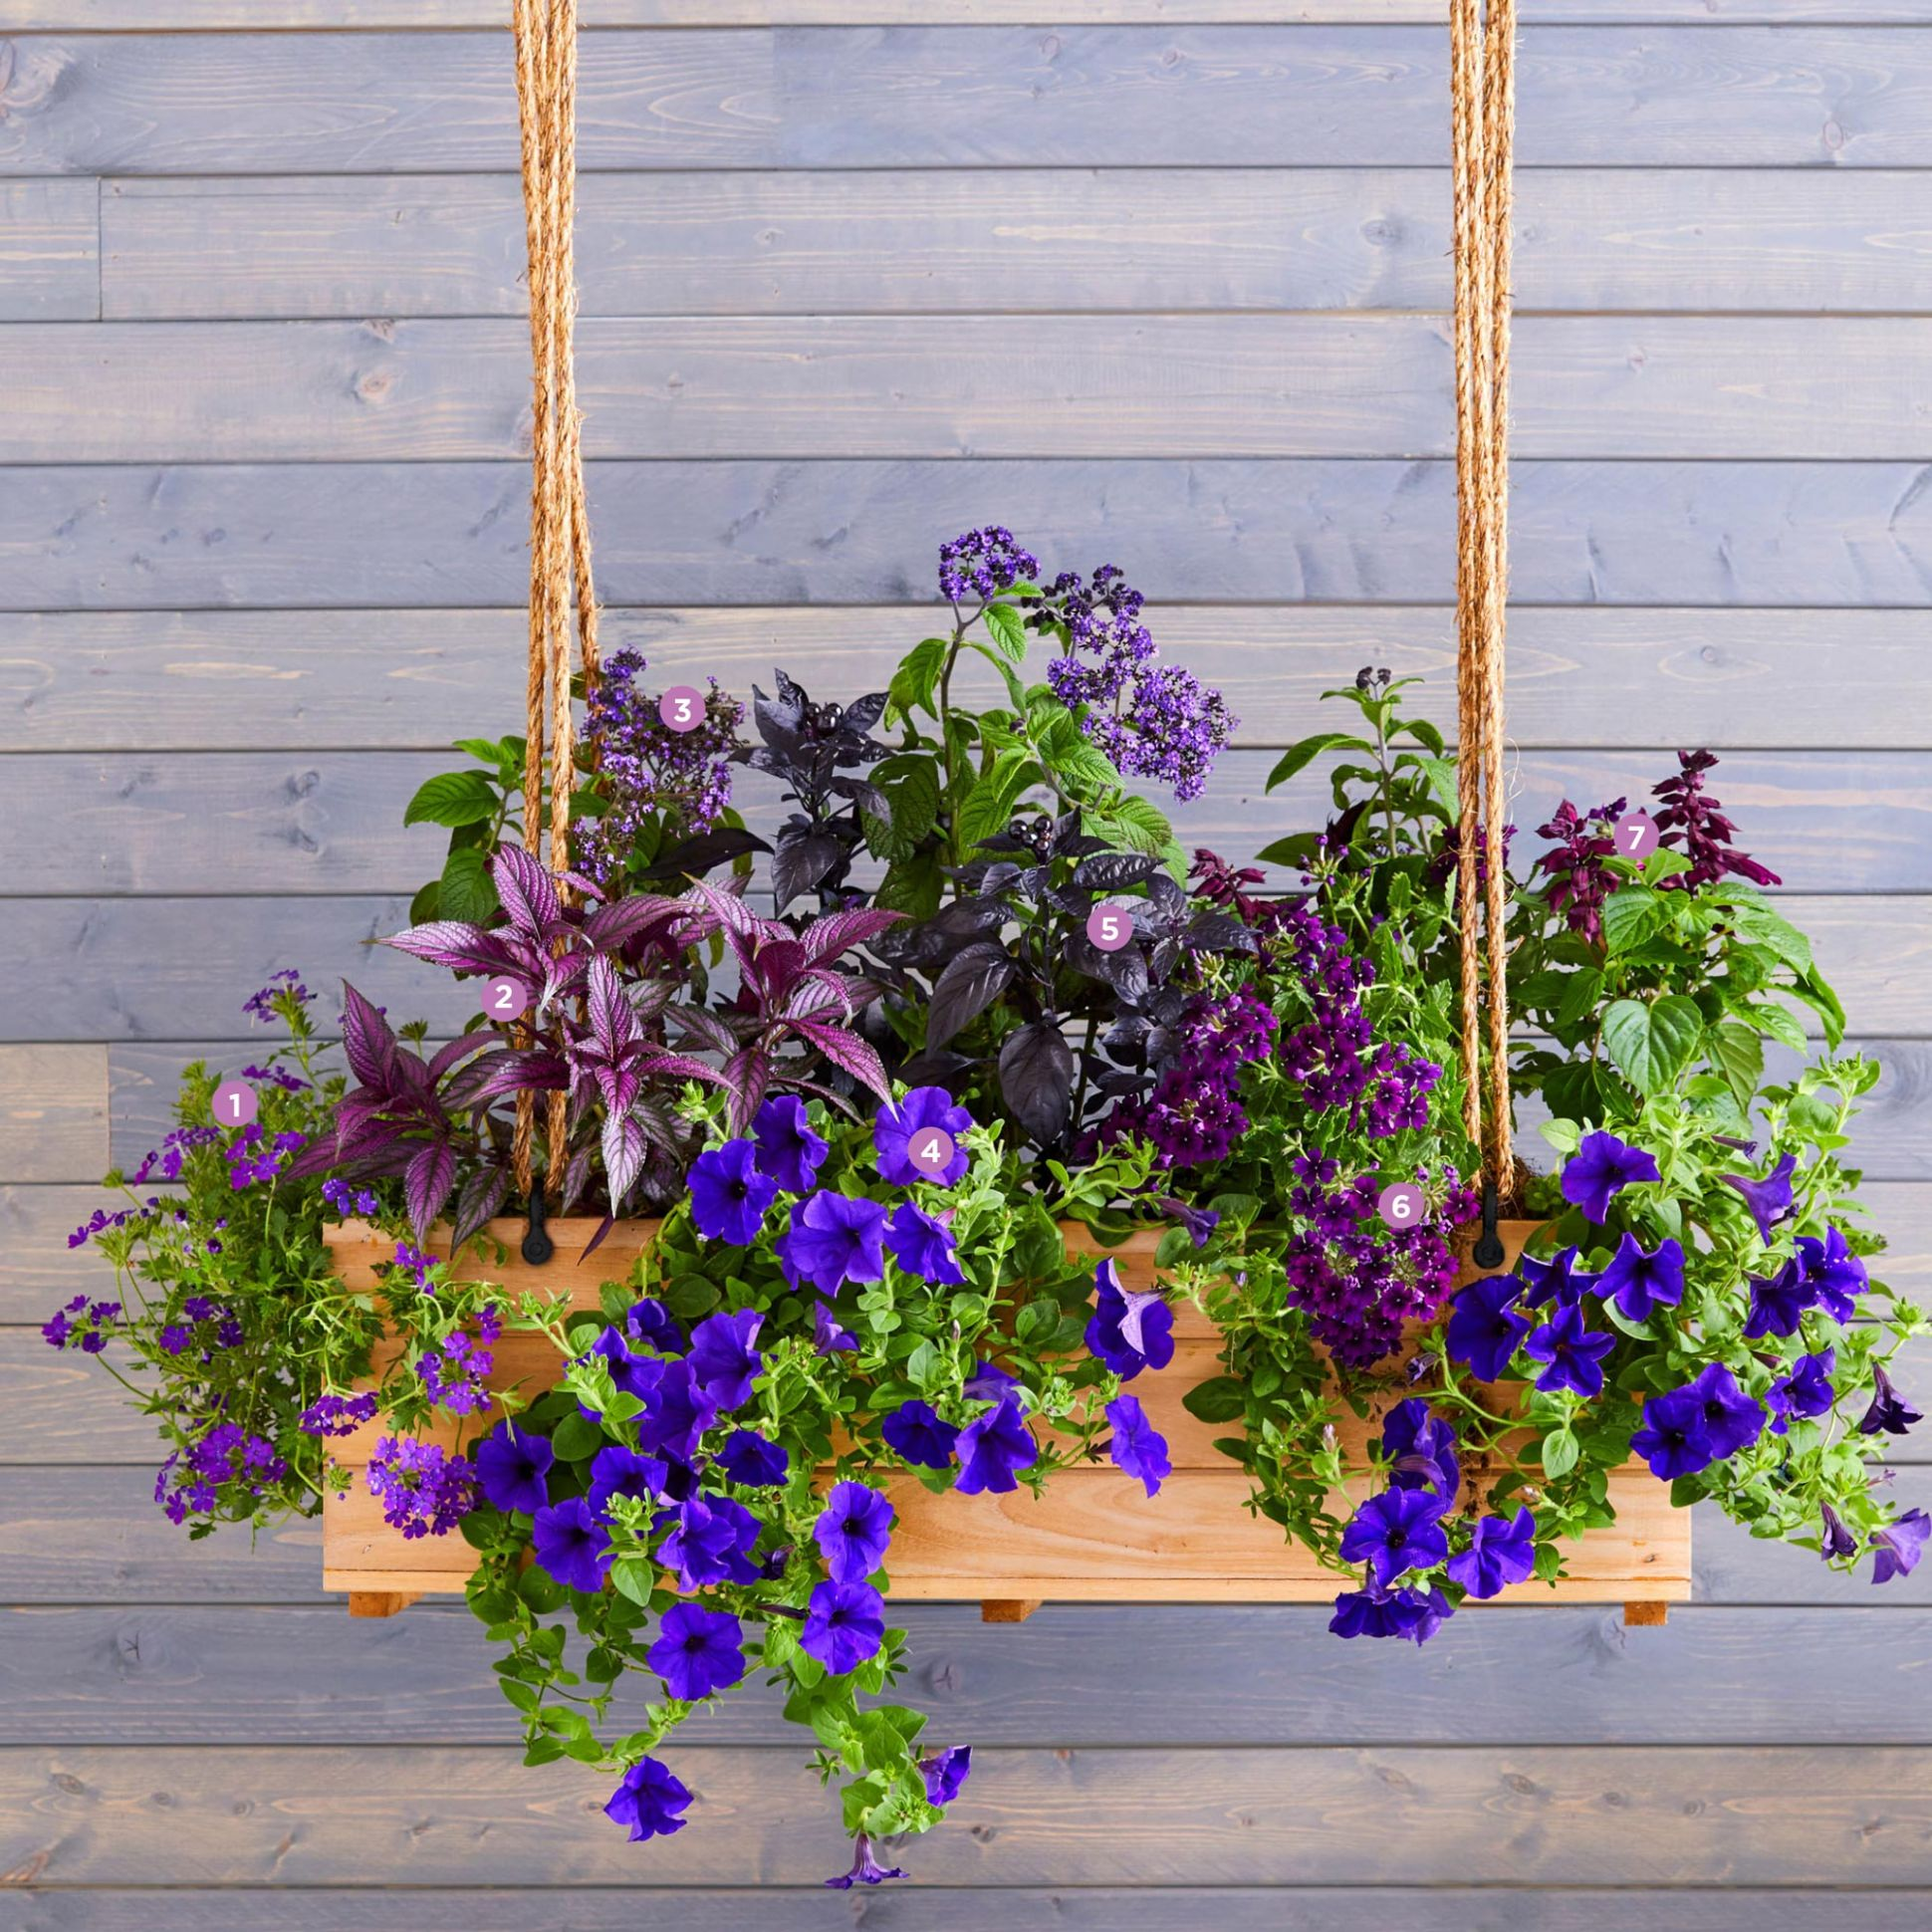 11 Great DIY Window Box Ideas | Midwest Living - window box ideas without flowers